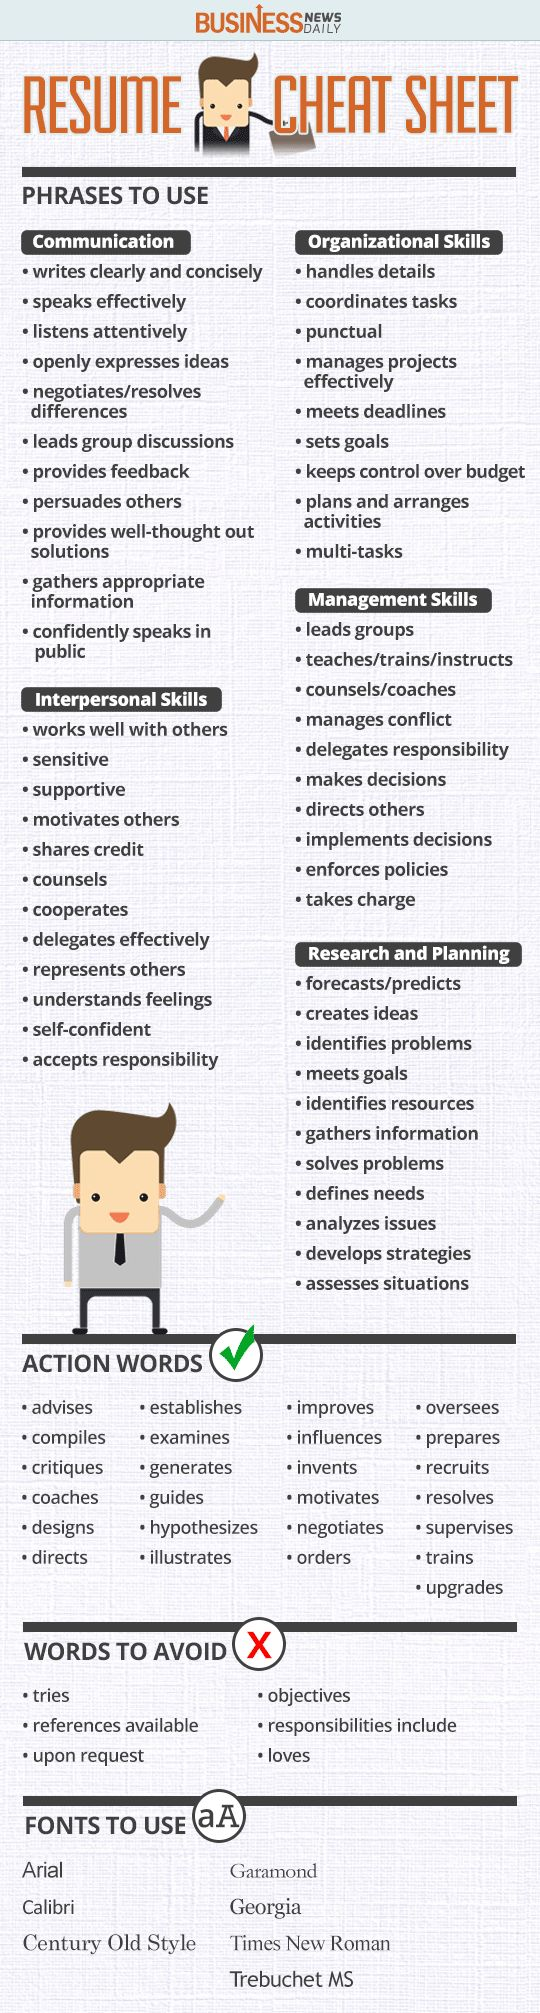 Opposenewapstandardsus  Terrific  Ideas About Resume On Pinterest  Cv Format Resume Cv And  With Hot Resume Cheat Sheet Infographic Andrews Almost Done With A Complete Unit On Employment Which With Astonishing Better Resume Also Resume And References In Addition Landman Resume And Mental Health Technician Resume As Well As Call Center Resume Objective Additionally Activities To Put On Resume From Pinterestcom With Opposenewapstandardsus  Hot  Ideas About Resume On Pinterest  Cv Format Resume Cv And  With Astonishing Resume Cheat Sheet Infographic Andrews Almost Done With A Complete Unit On Employment Which And Terrific Better Resume Also Resume And References In Addition Landman Resume From Pinterestcom